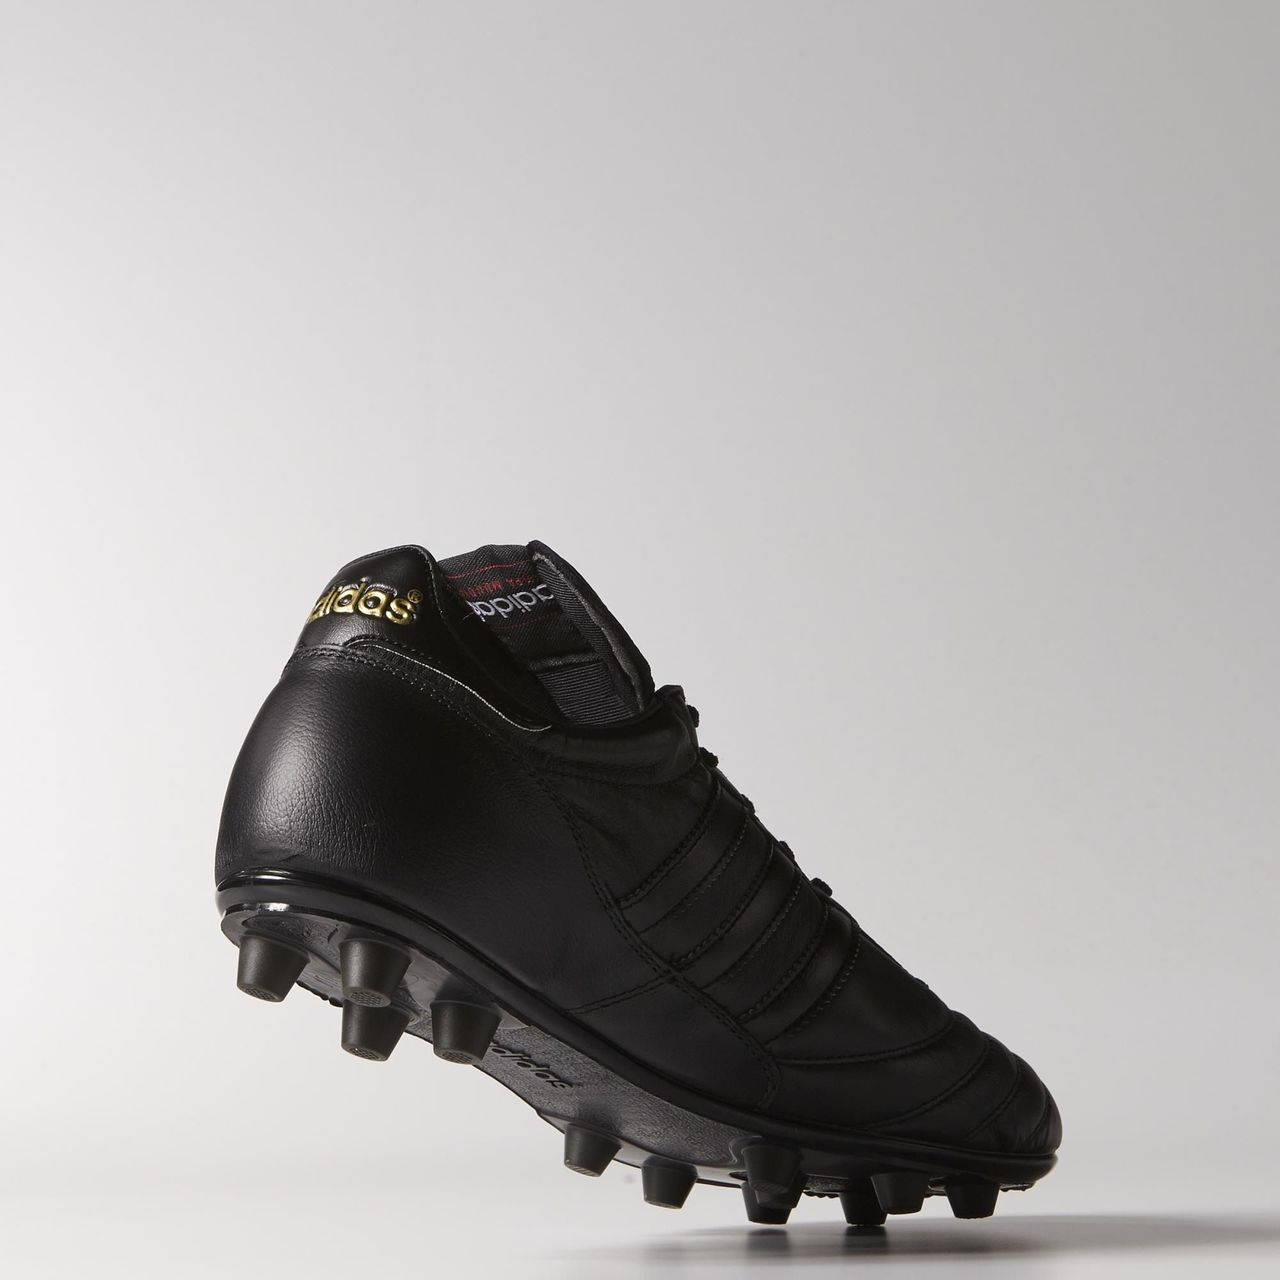 click to enlarge image adidas copa mundial football boots b.